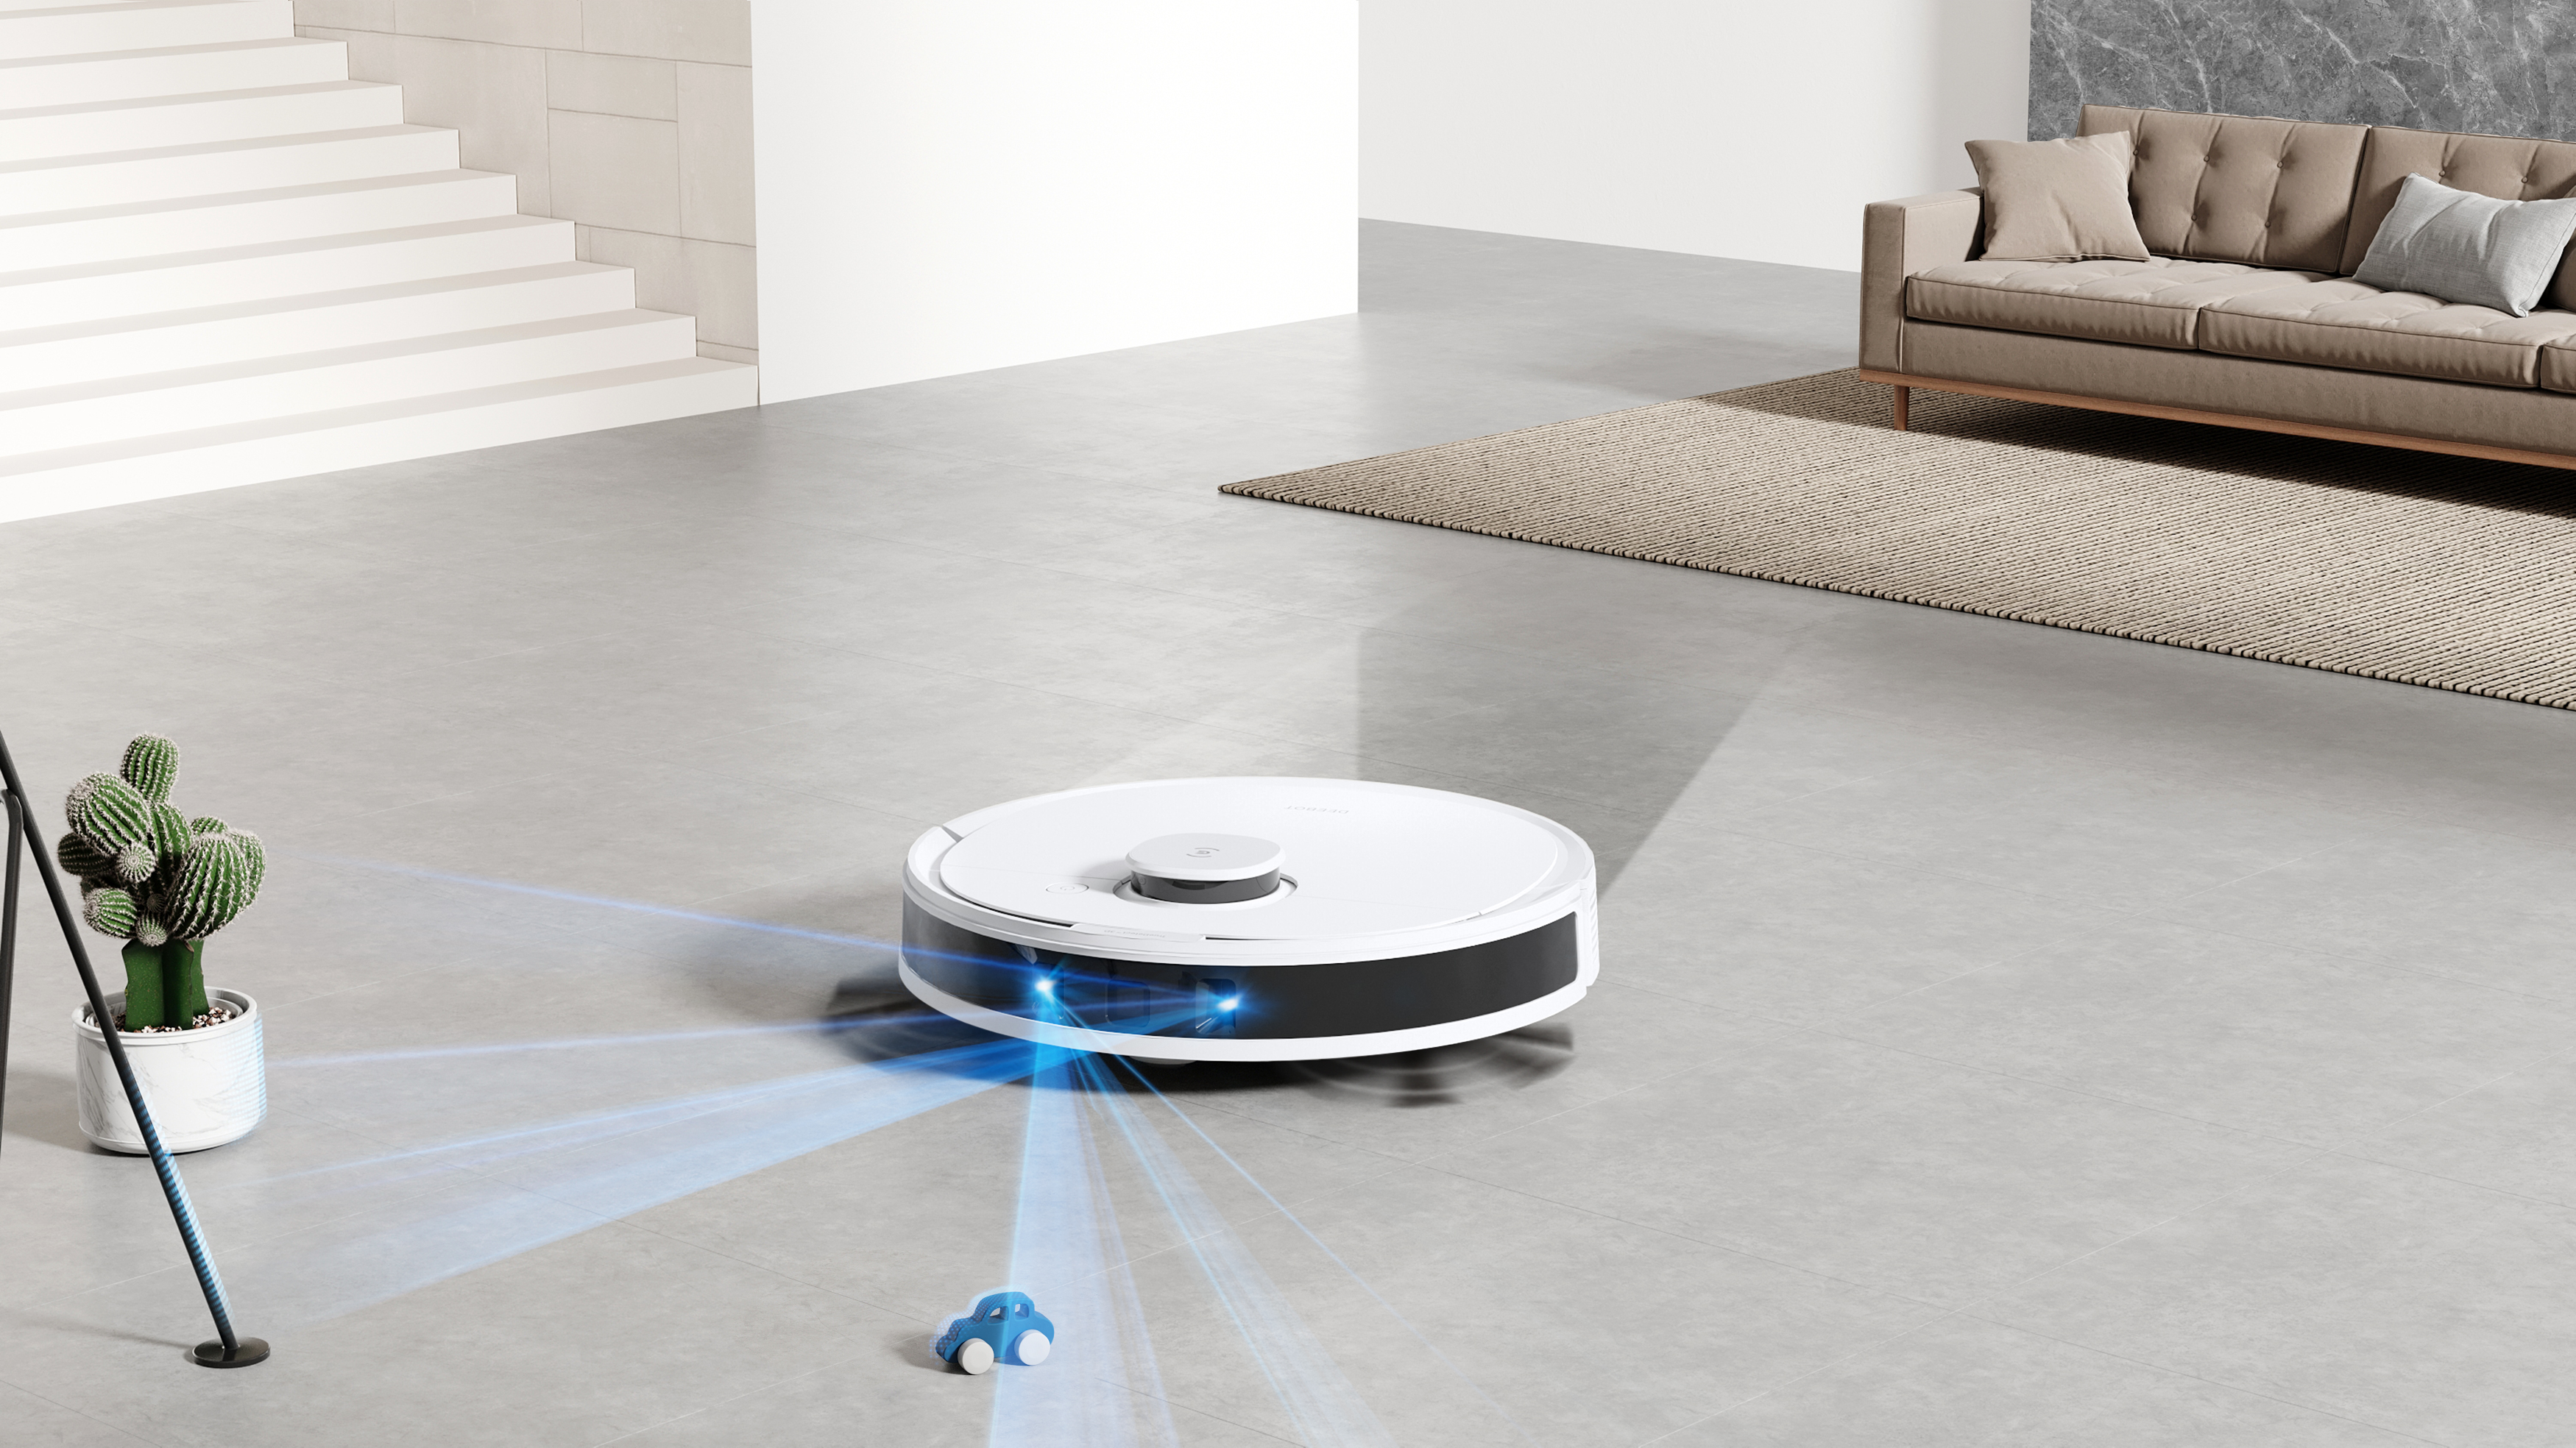 ECOVACS ROBOTICS Introduces the DEEBOT N8 PRO In Malaysia to Provide Hands-free and Effective Home Cleaning Experience